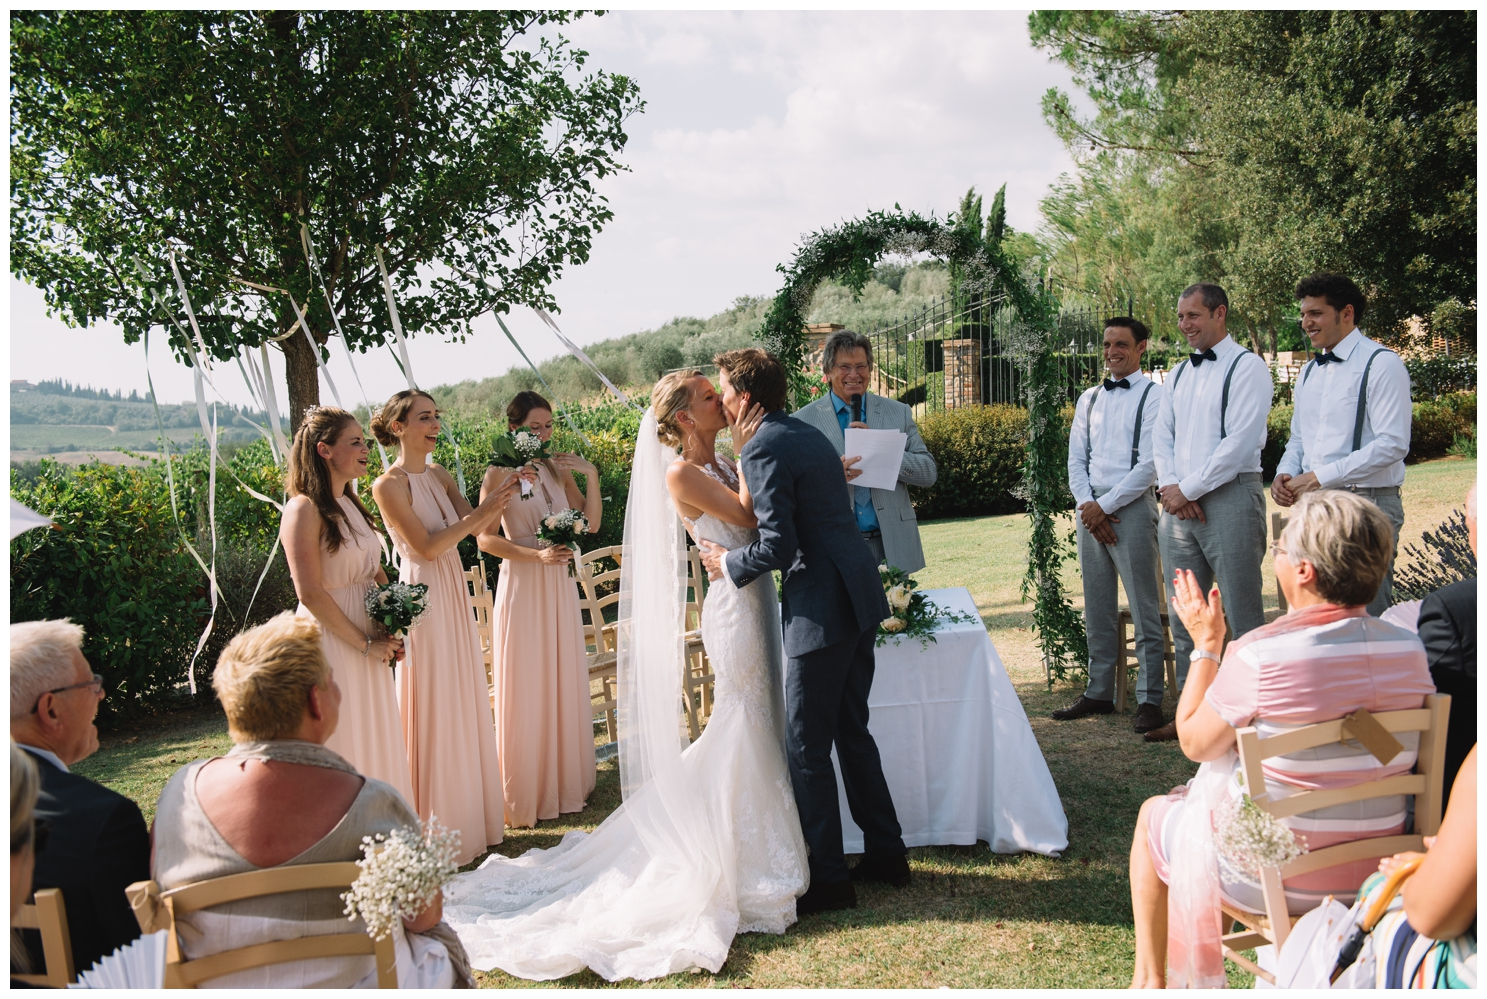 Wedding_Photographer_Tuscany_Italy_0028.jpg